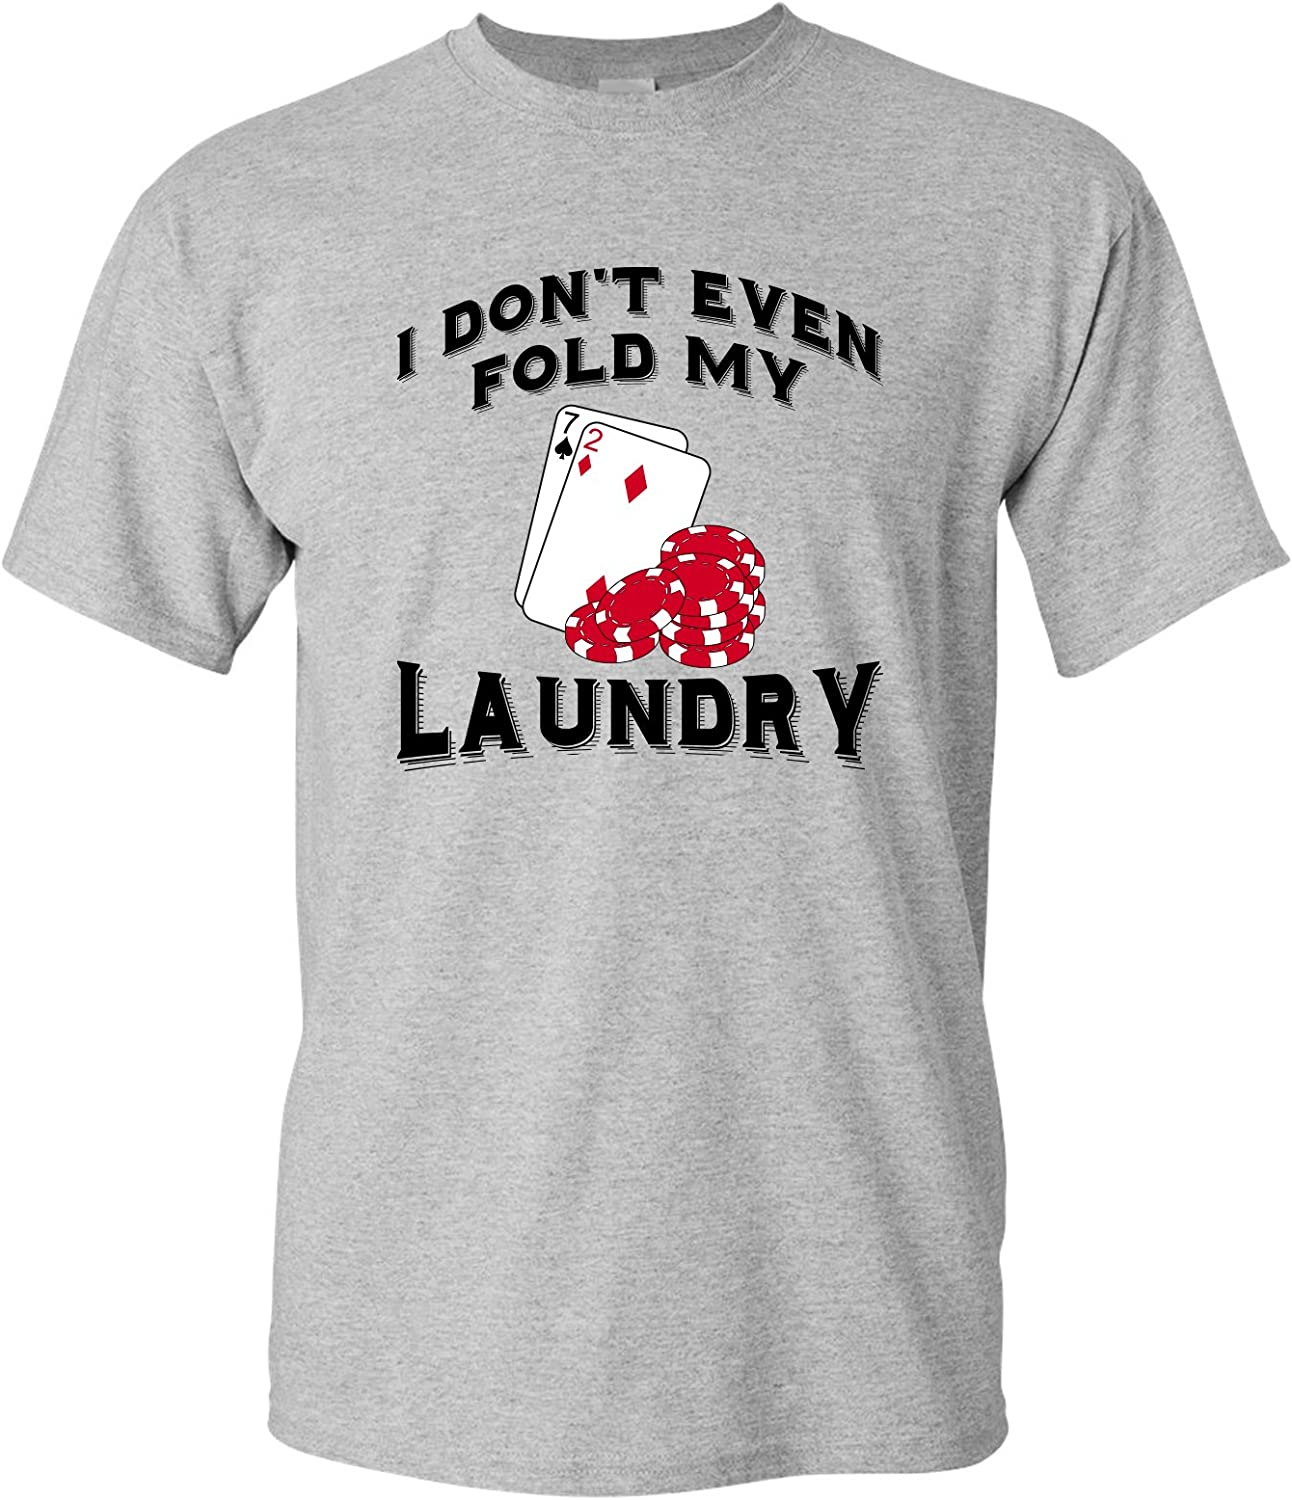 UGP Campus Apparel I Don't Even Fold My Laundry - Funny Texas Hold 'Em Poker Gambling T Shirt